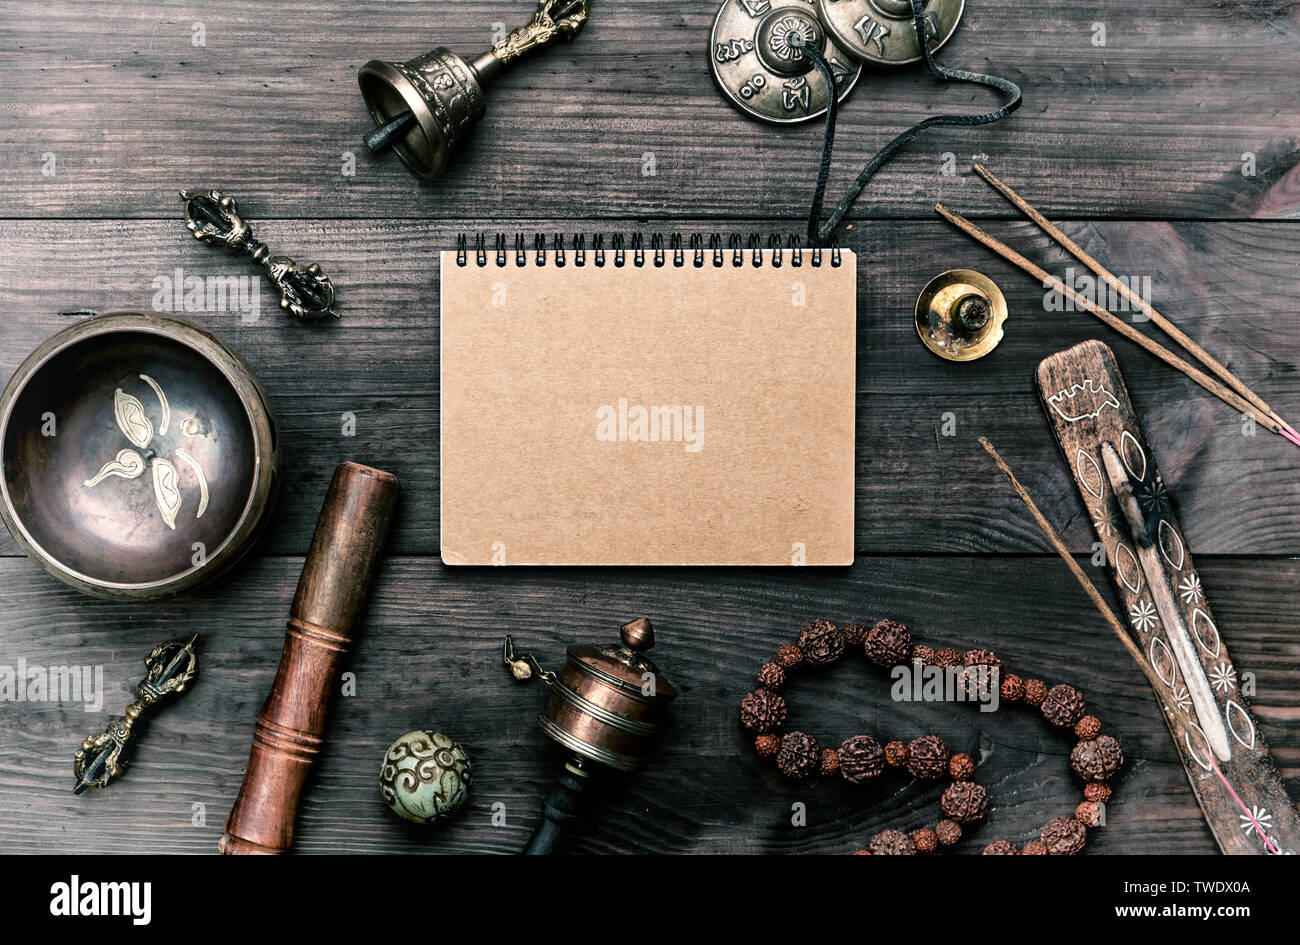 religious musical instruments for meditation and alternative medicine, blank notebook with brown sheets on a wooden background, top view - Stock Image